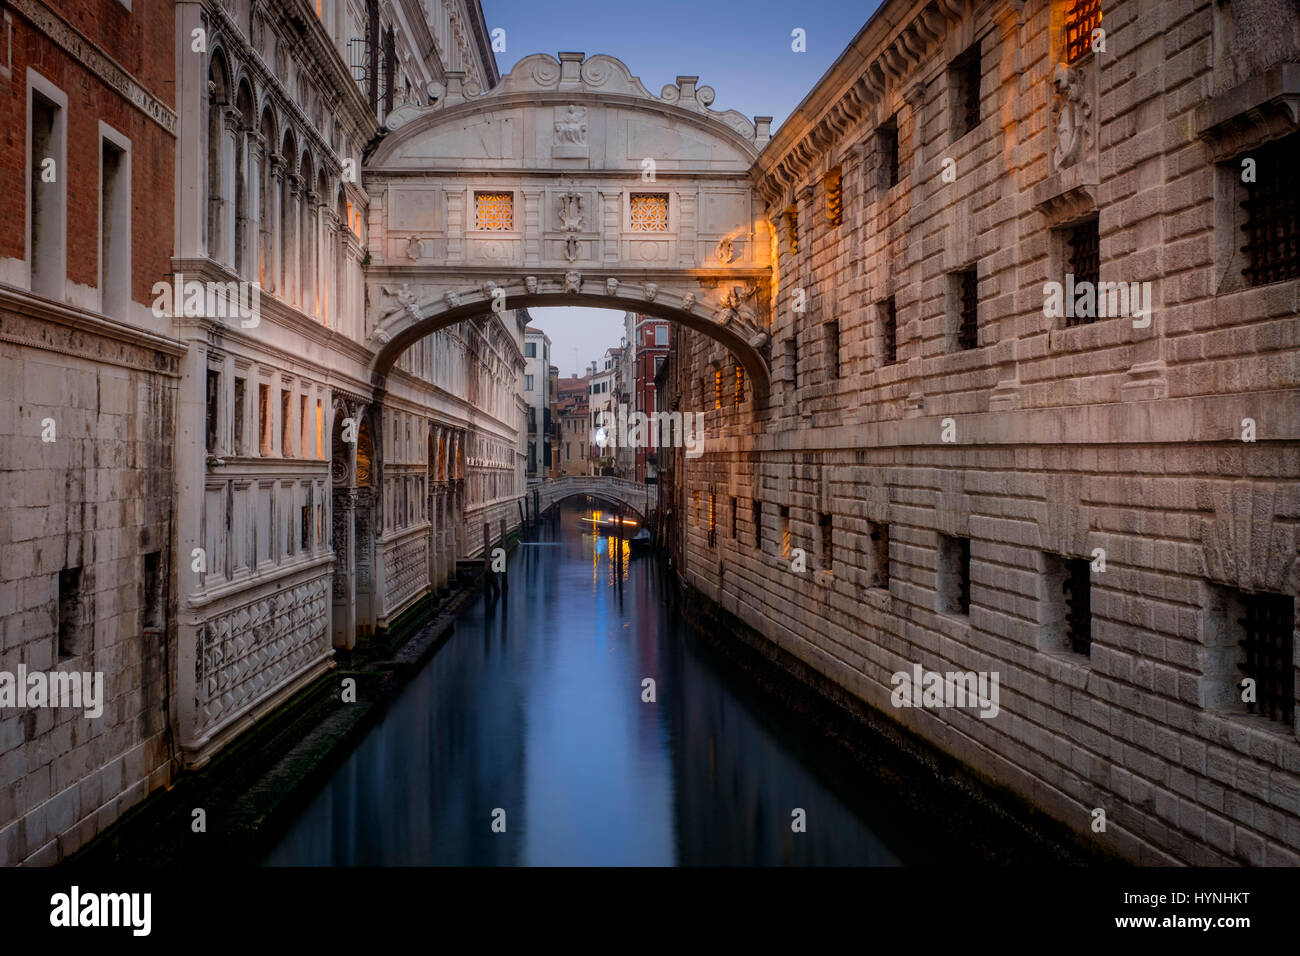 VENICE, ITALY - CIRCA MAY 2015: Bridge of Sighs at dusk in San Marco, Venice. - Stock Image